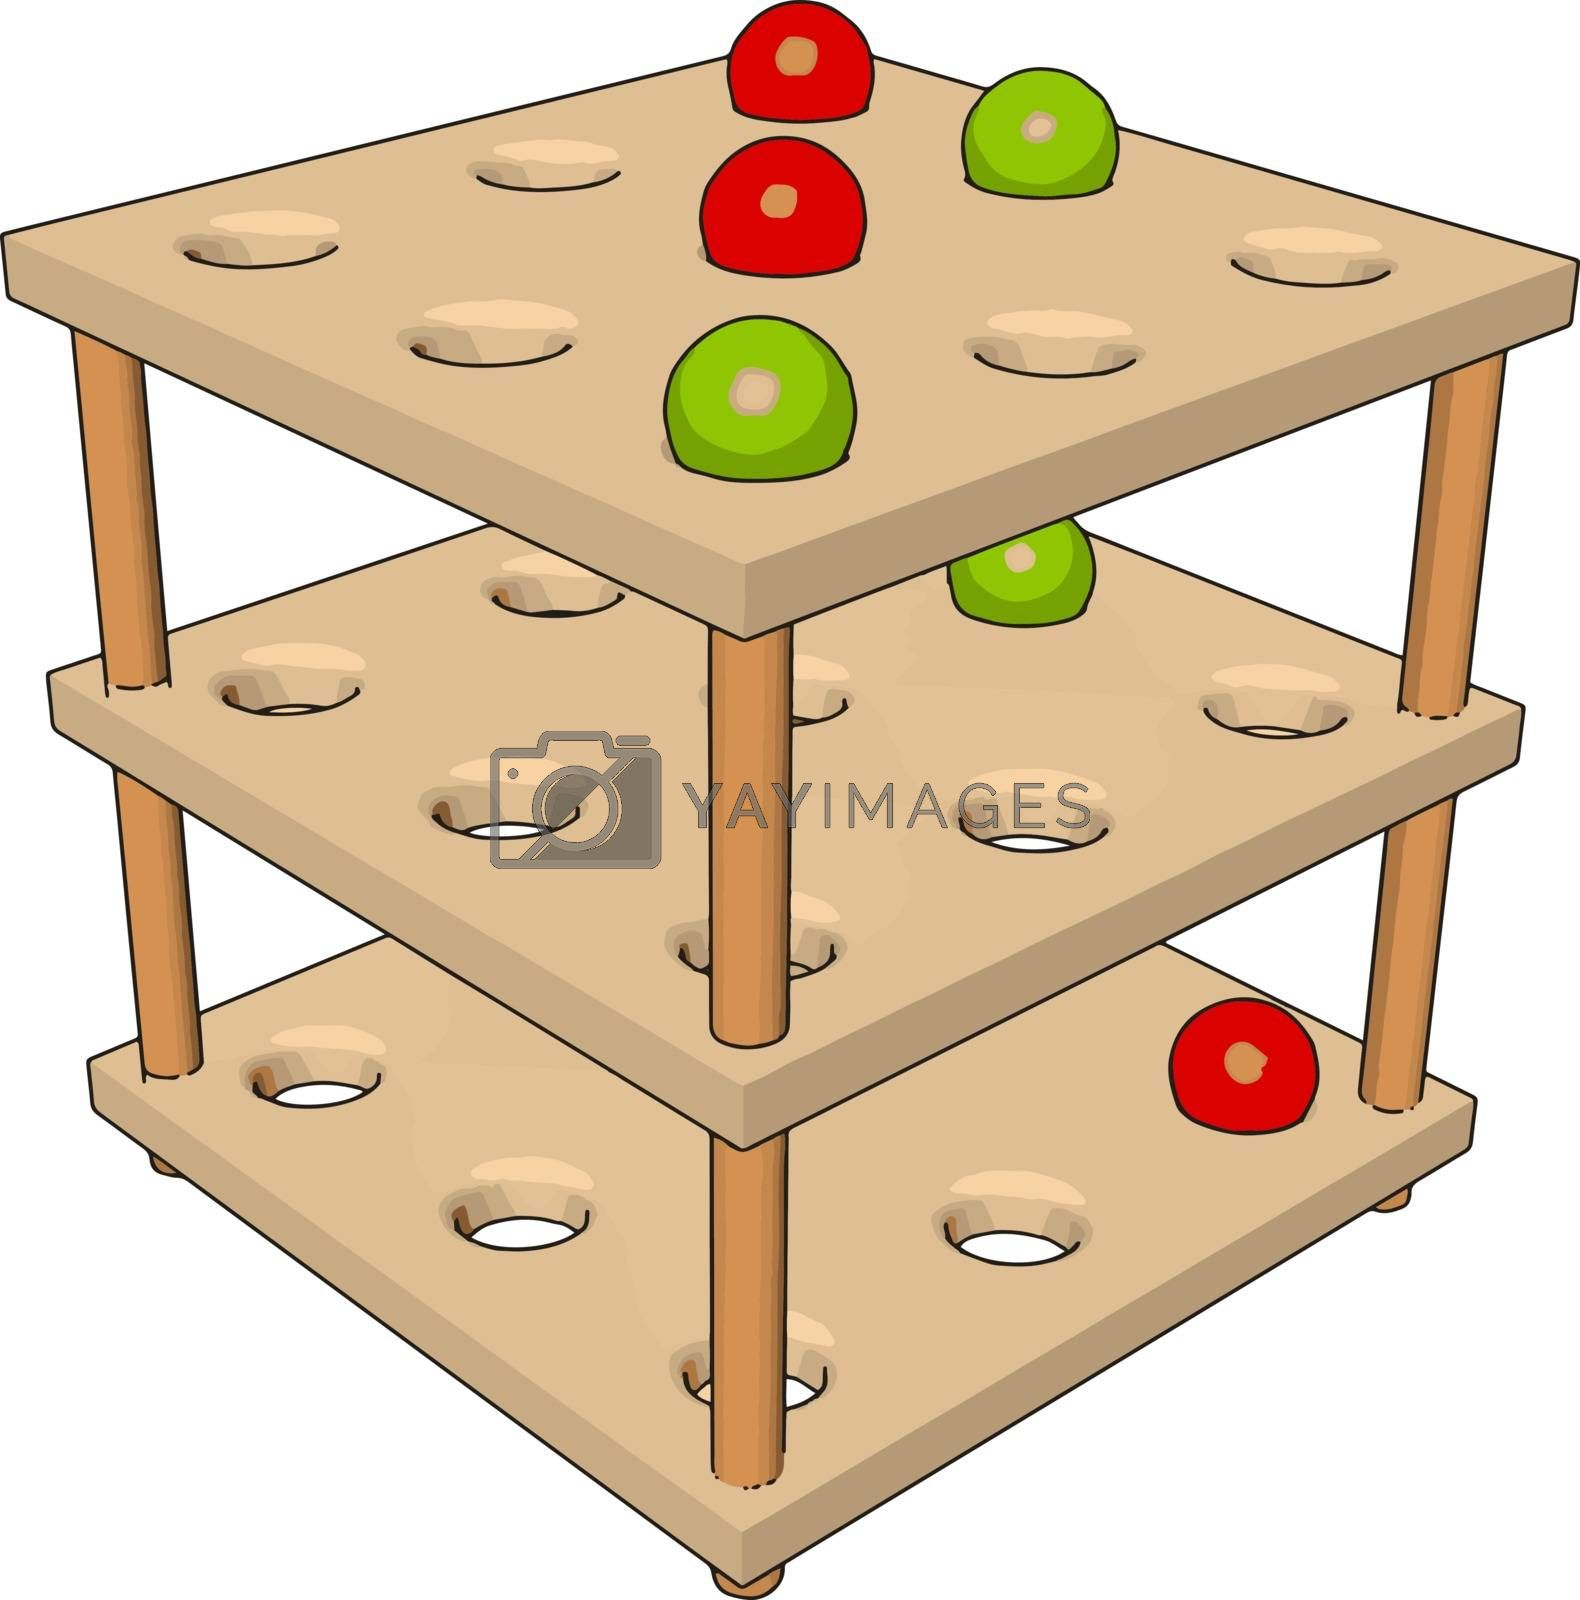 Toddlers wood discovery table, illustration, vector on white background.